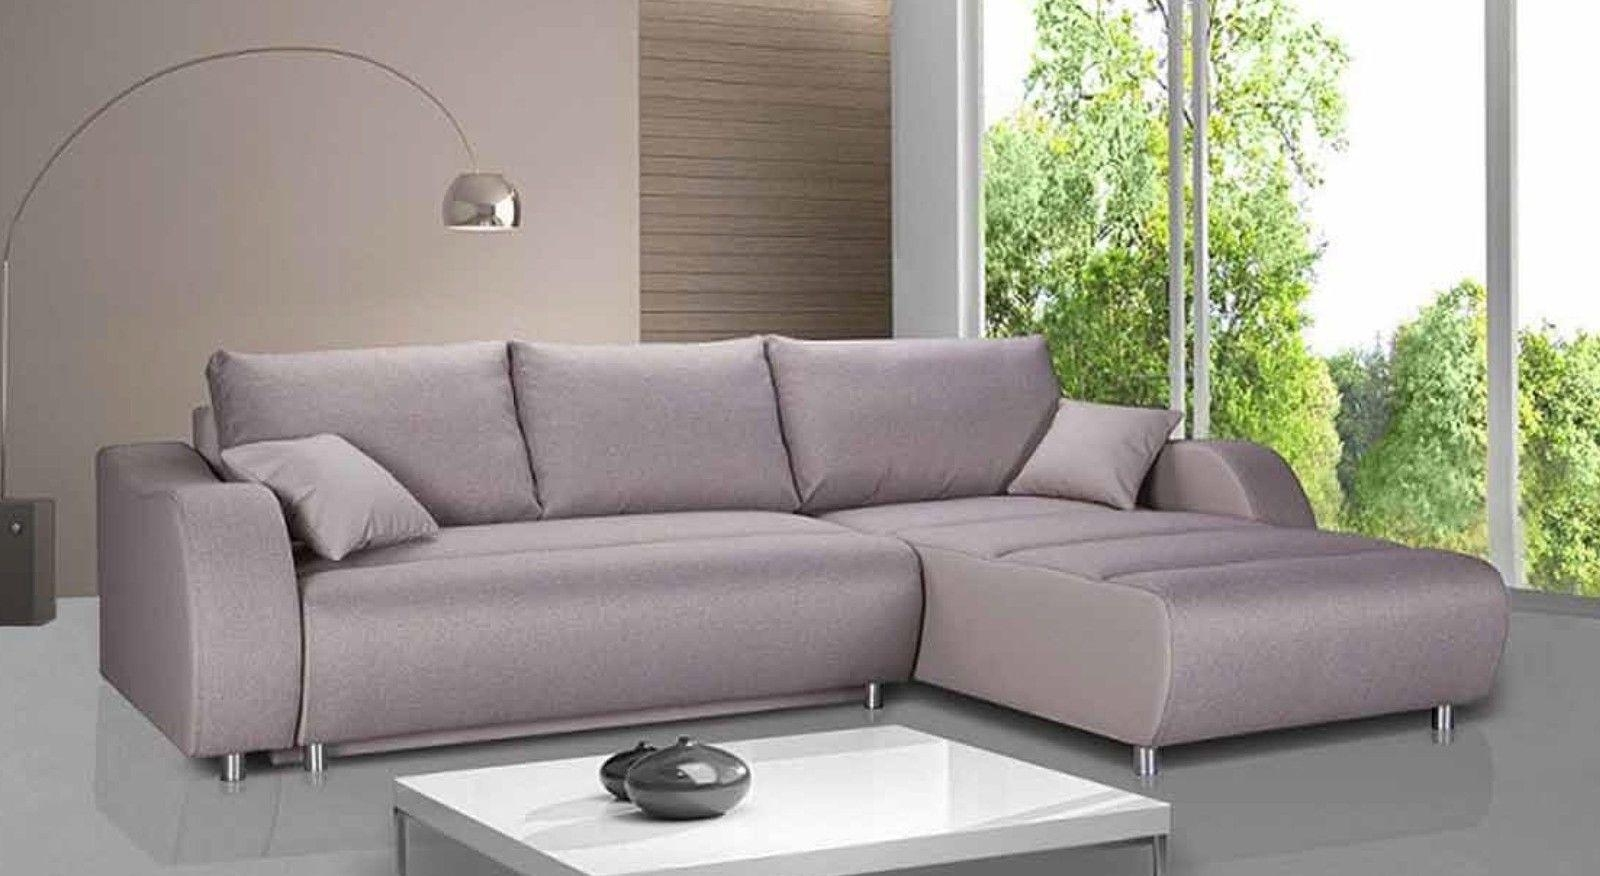 cheap leather sectional sofa eleanor furniture village 20 best collection of corner sofas ideas